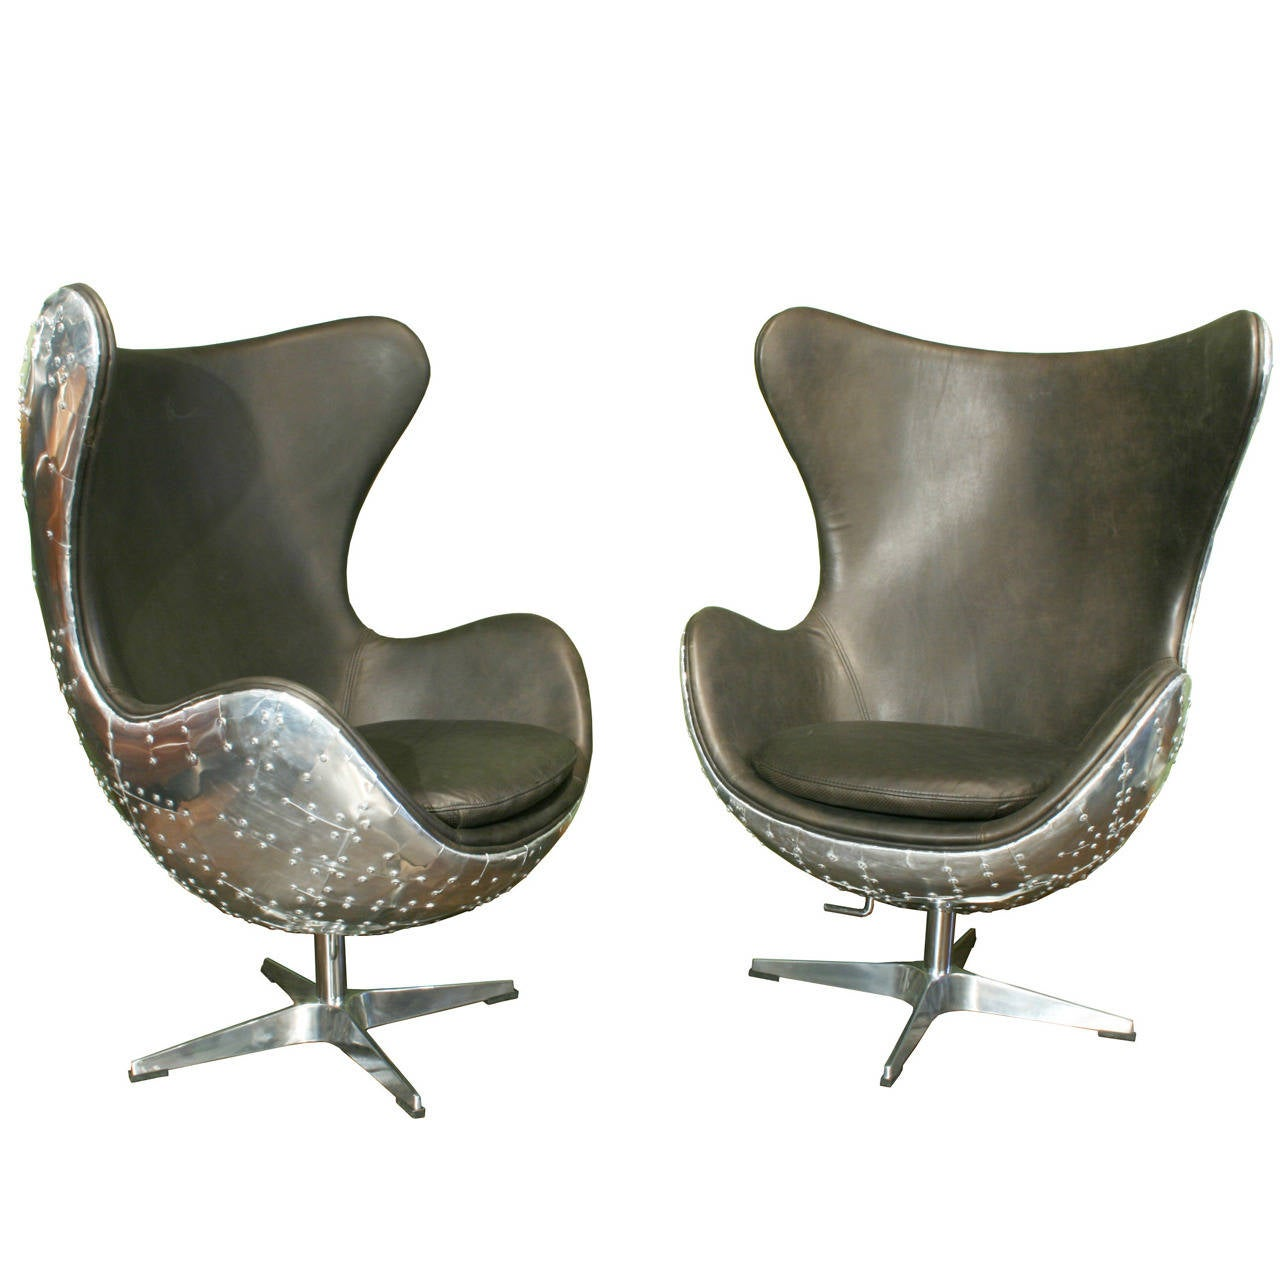 Egg chairs pair of aviator armchairs at 1stdibs for Armchair furniture